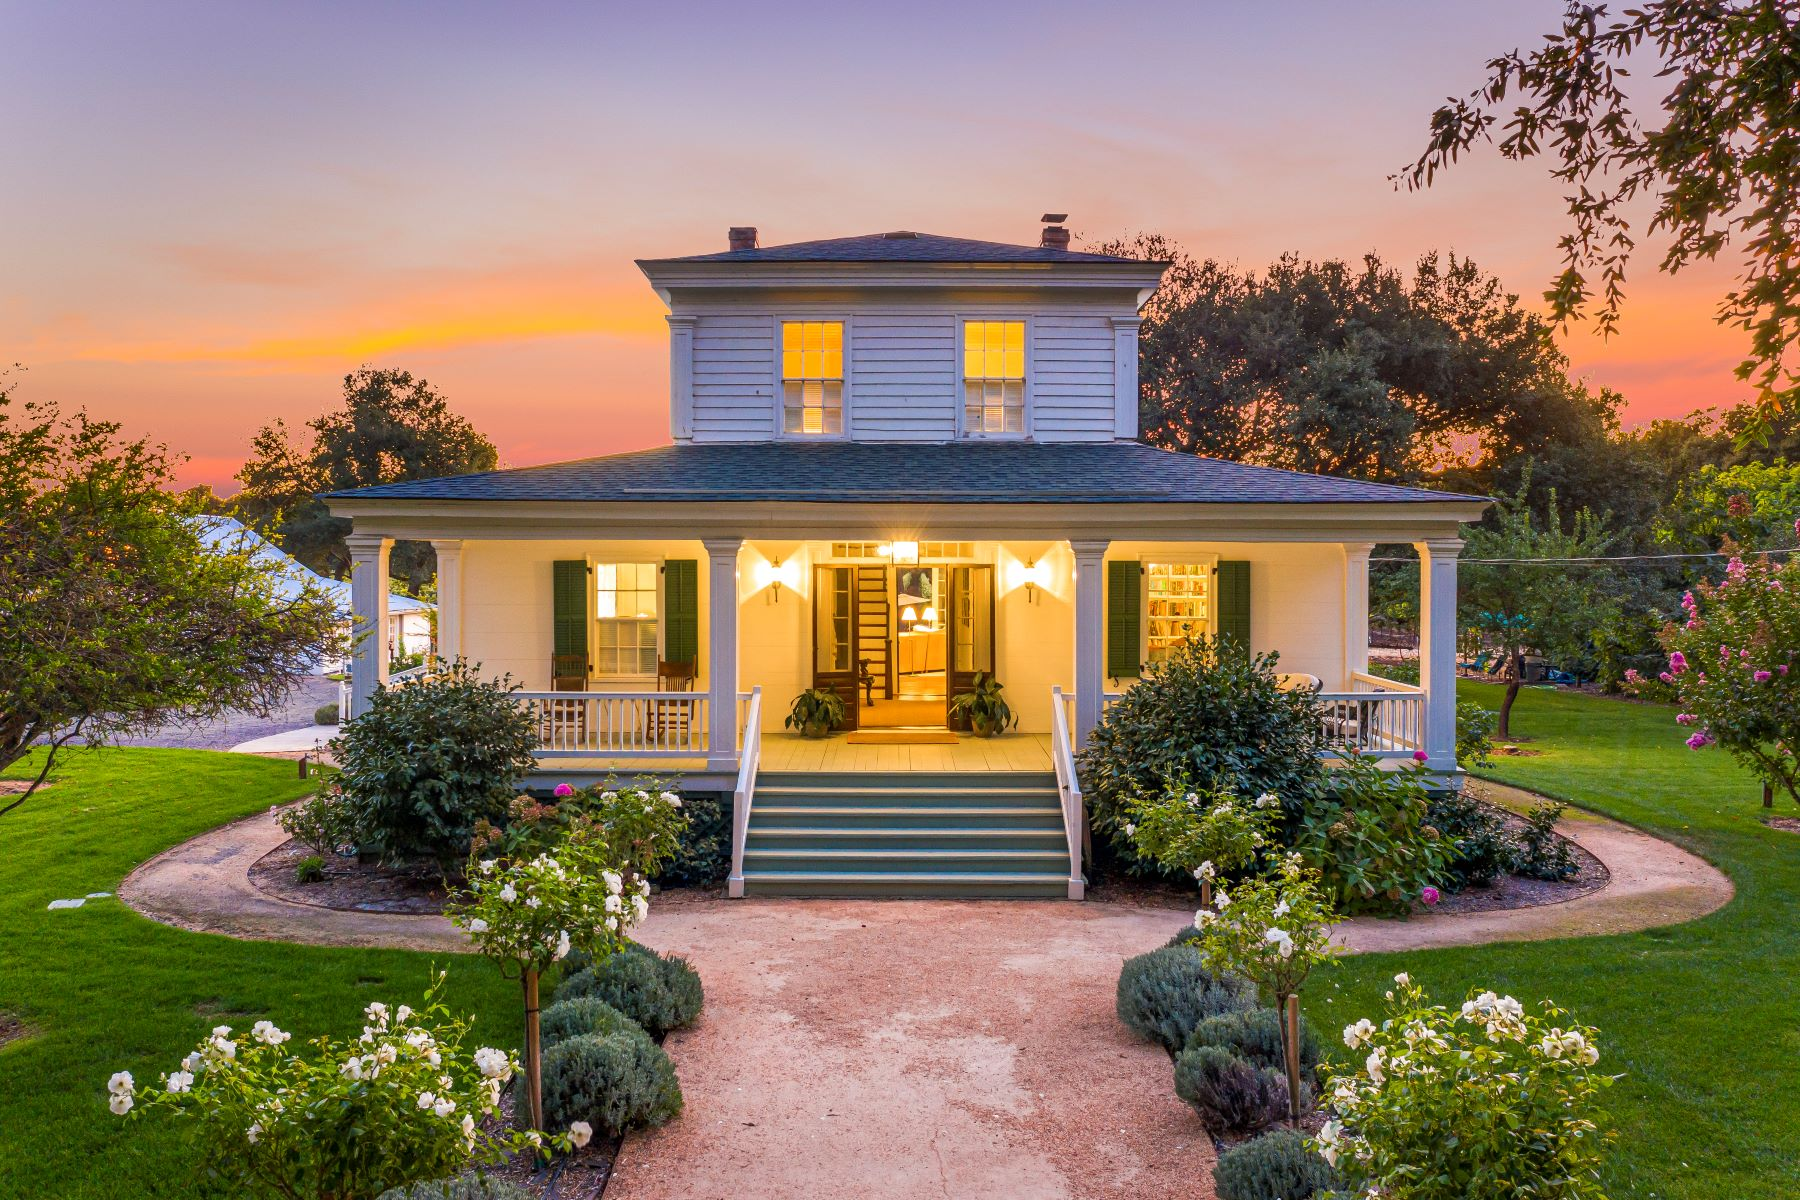 Single Family Homes for Active at 1851 Historic Vineyard Home 600 Harris Rd Sonoma, California 95476 United States